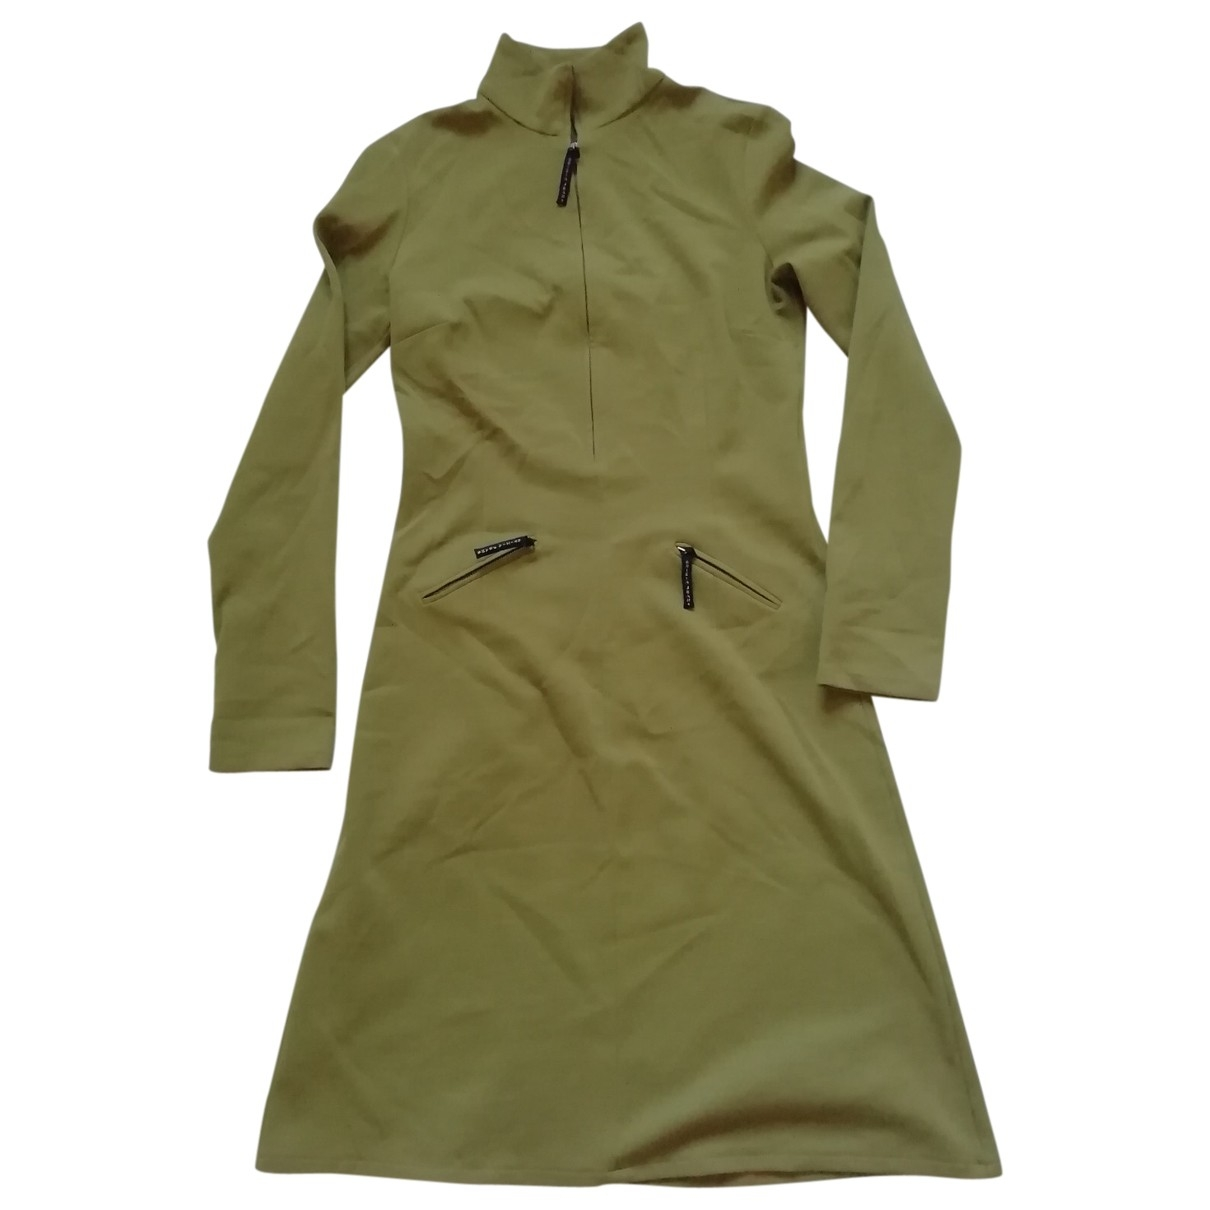 Krizia \N Green dress for Women 42 IT